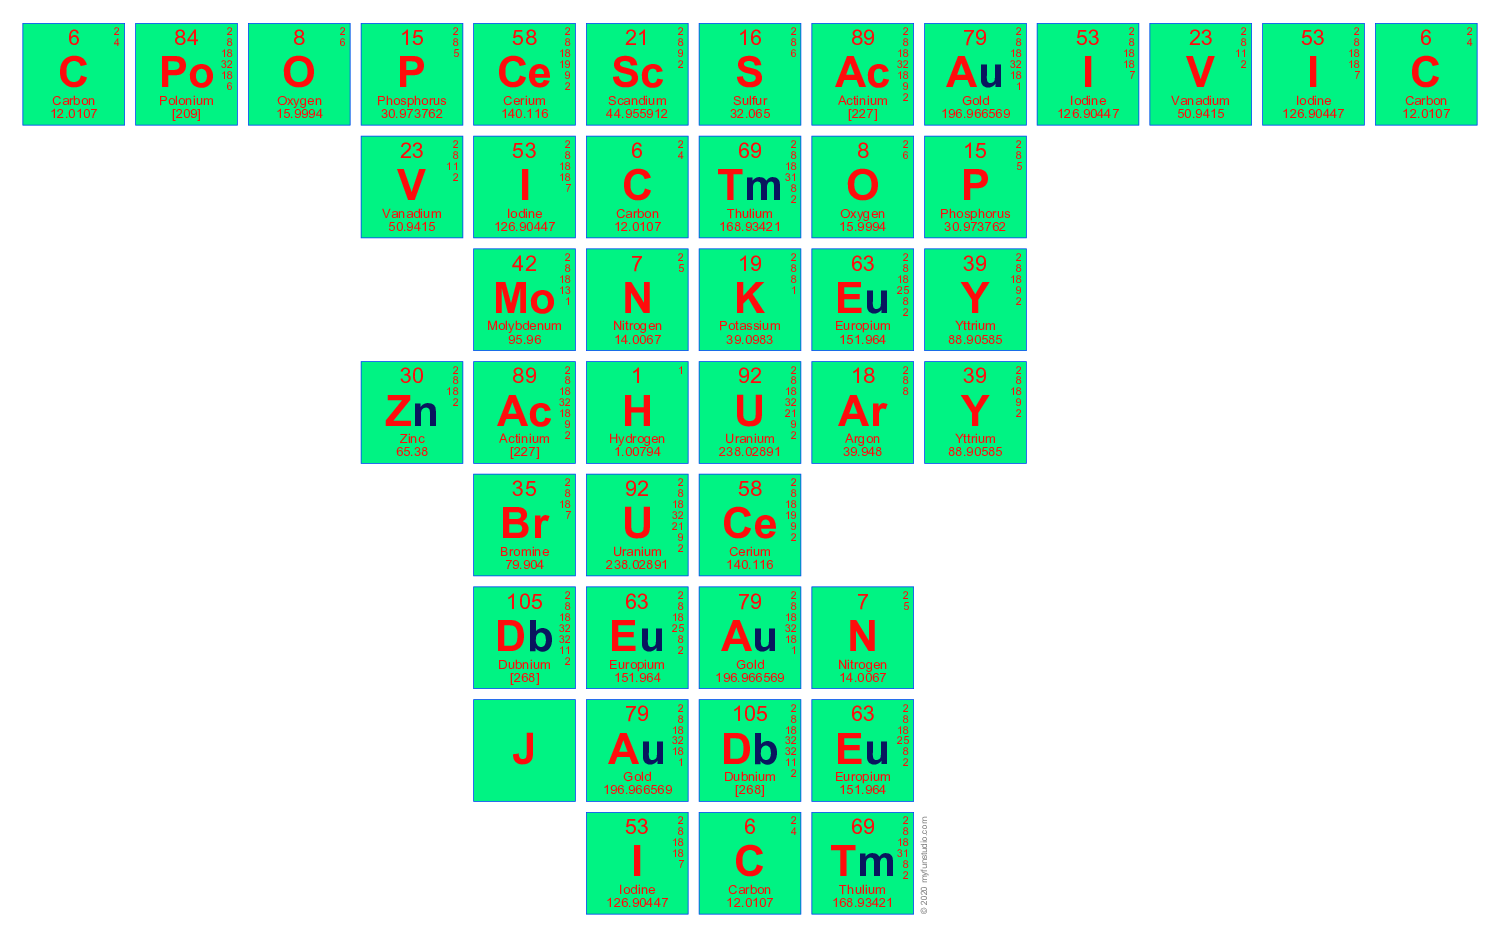 Gg elements of the periodic table writer my fun studio cpoopcescsacaivic victop monkey zachuary bruce dean gamestrikefo Gallery